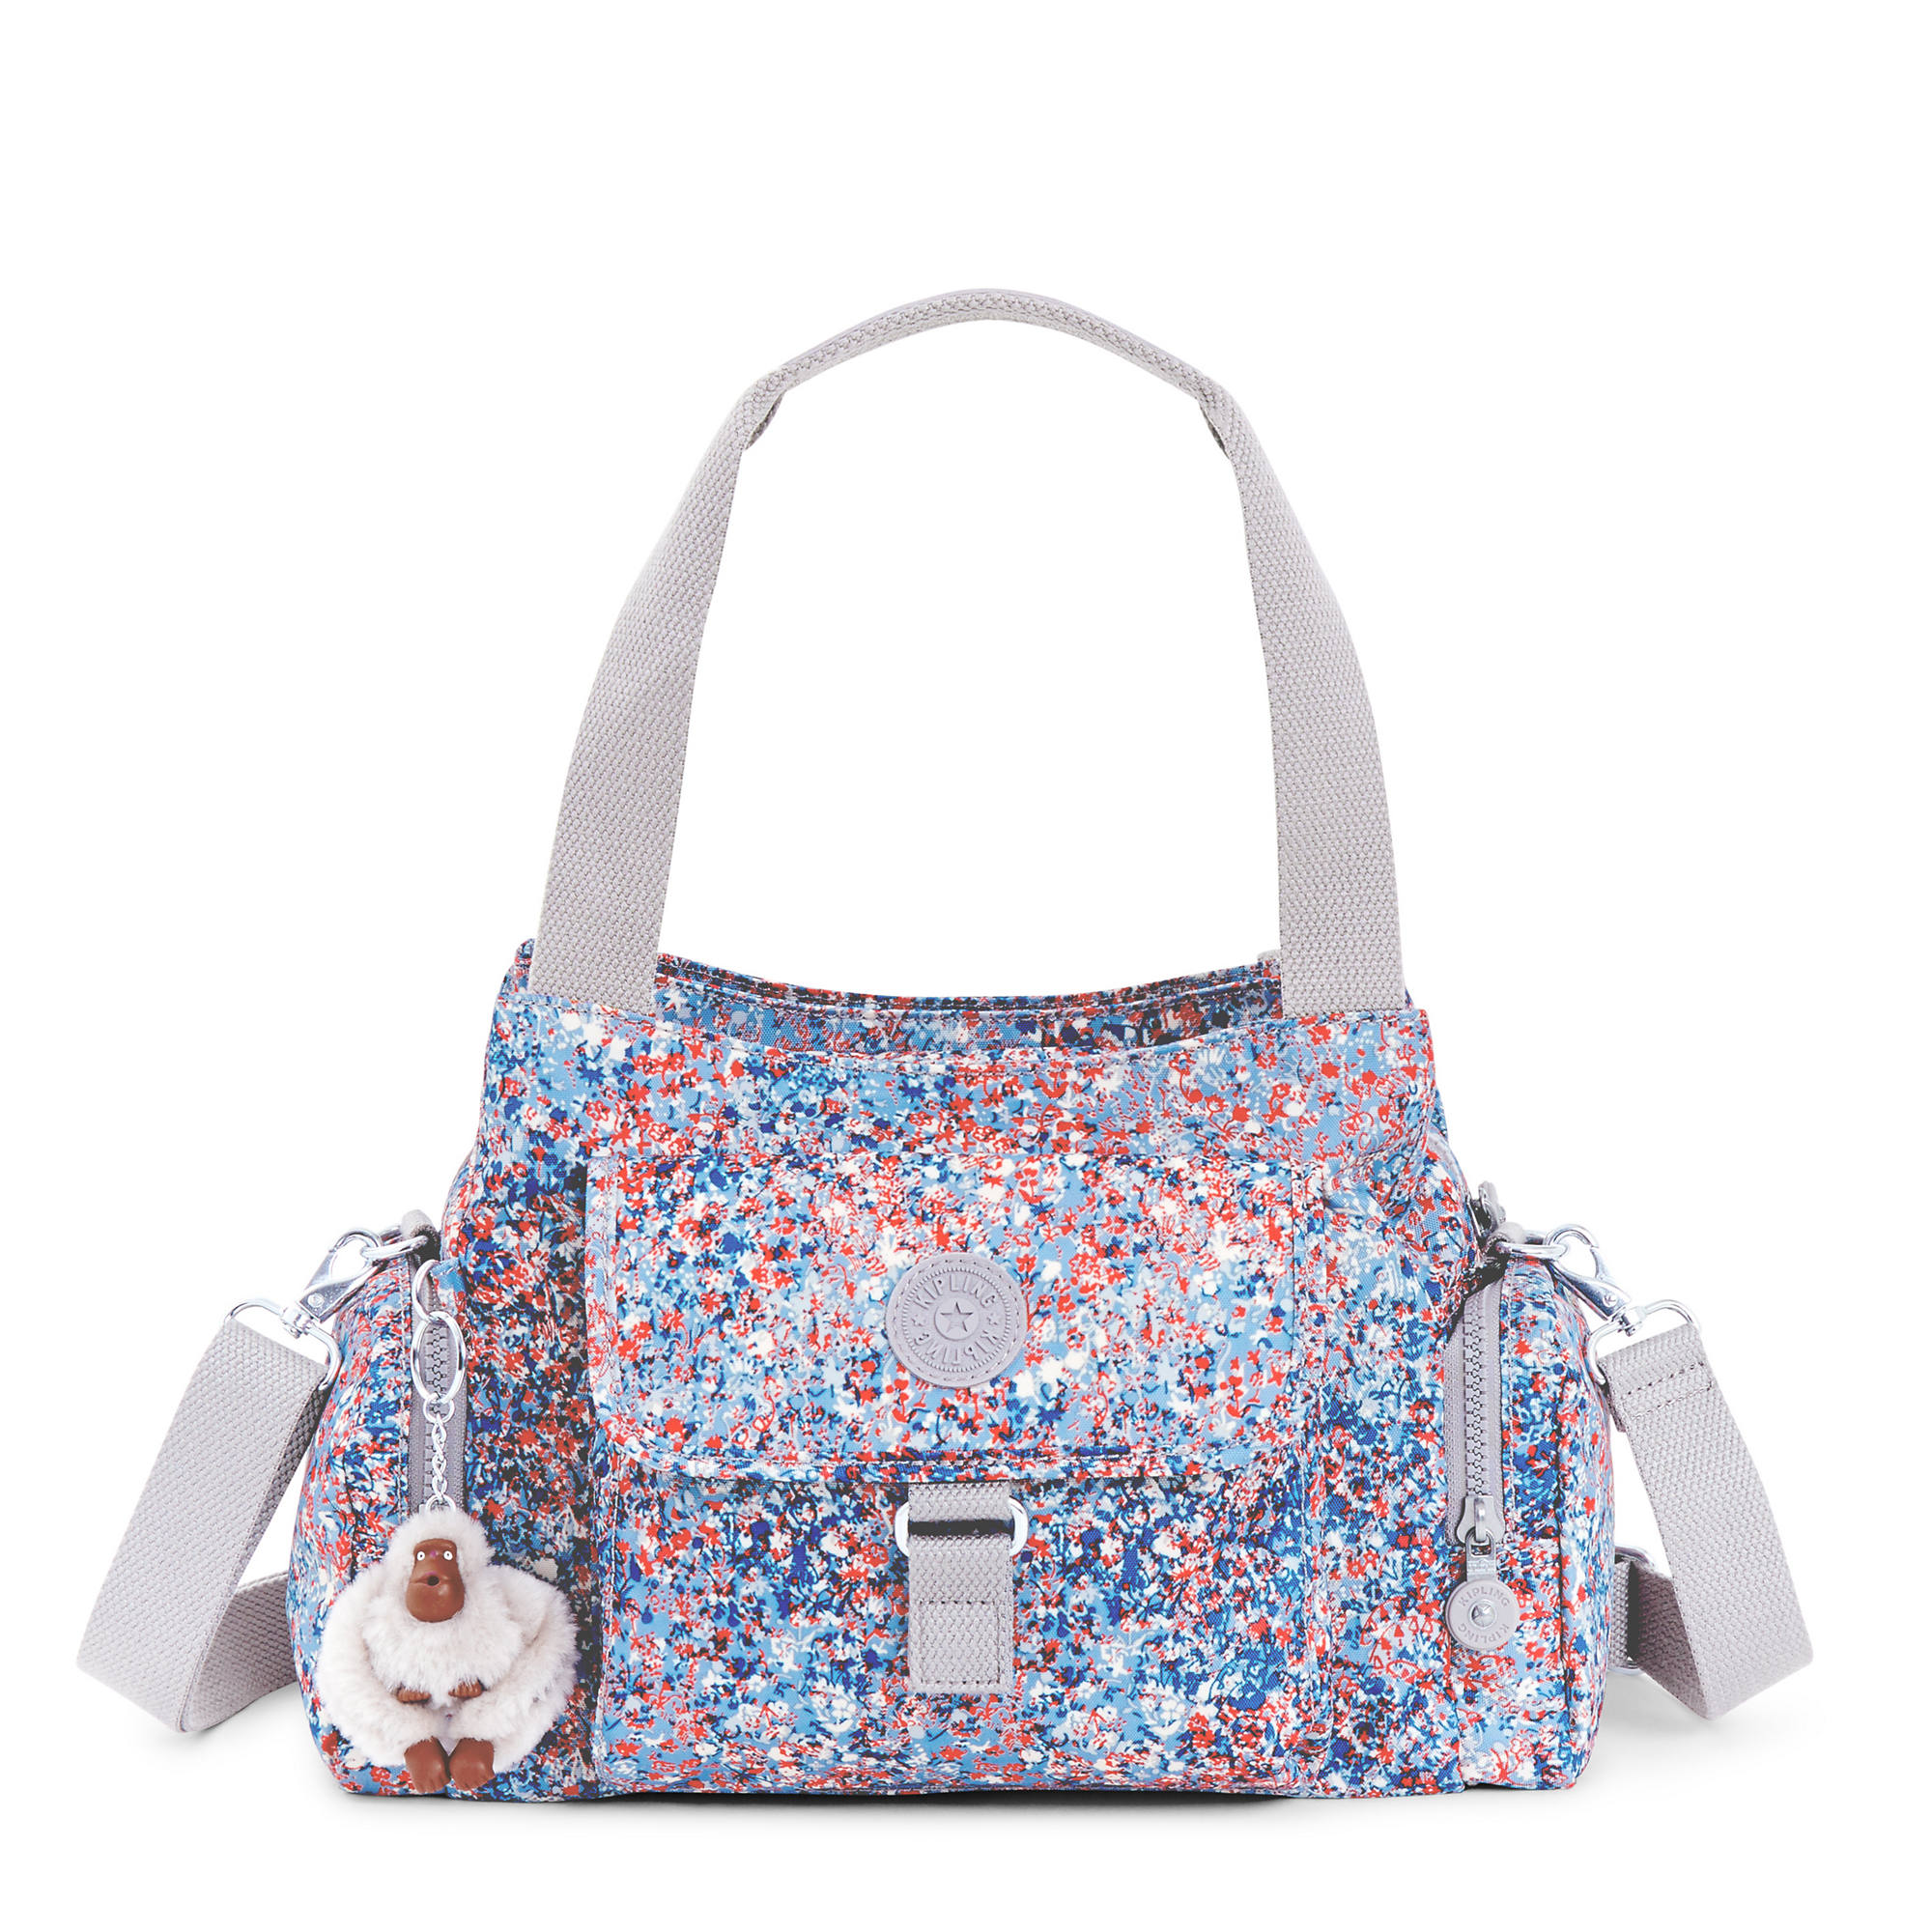 Felix Printed Handbag Fainted Fls Large